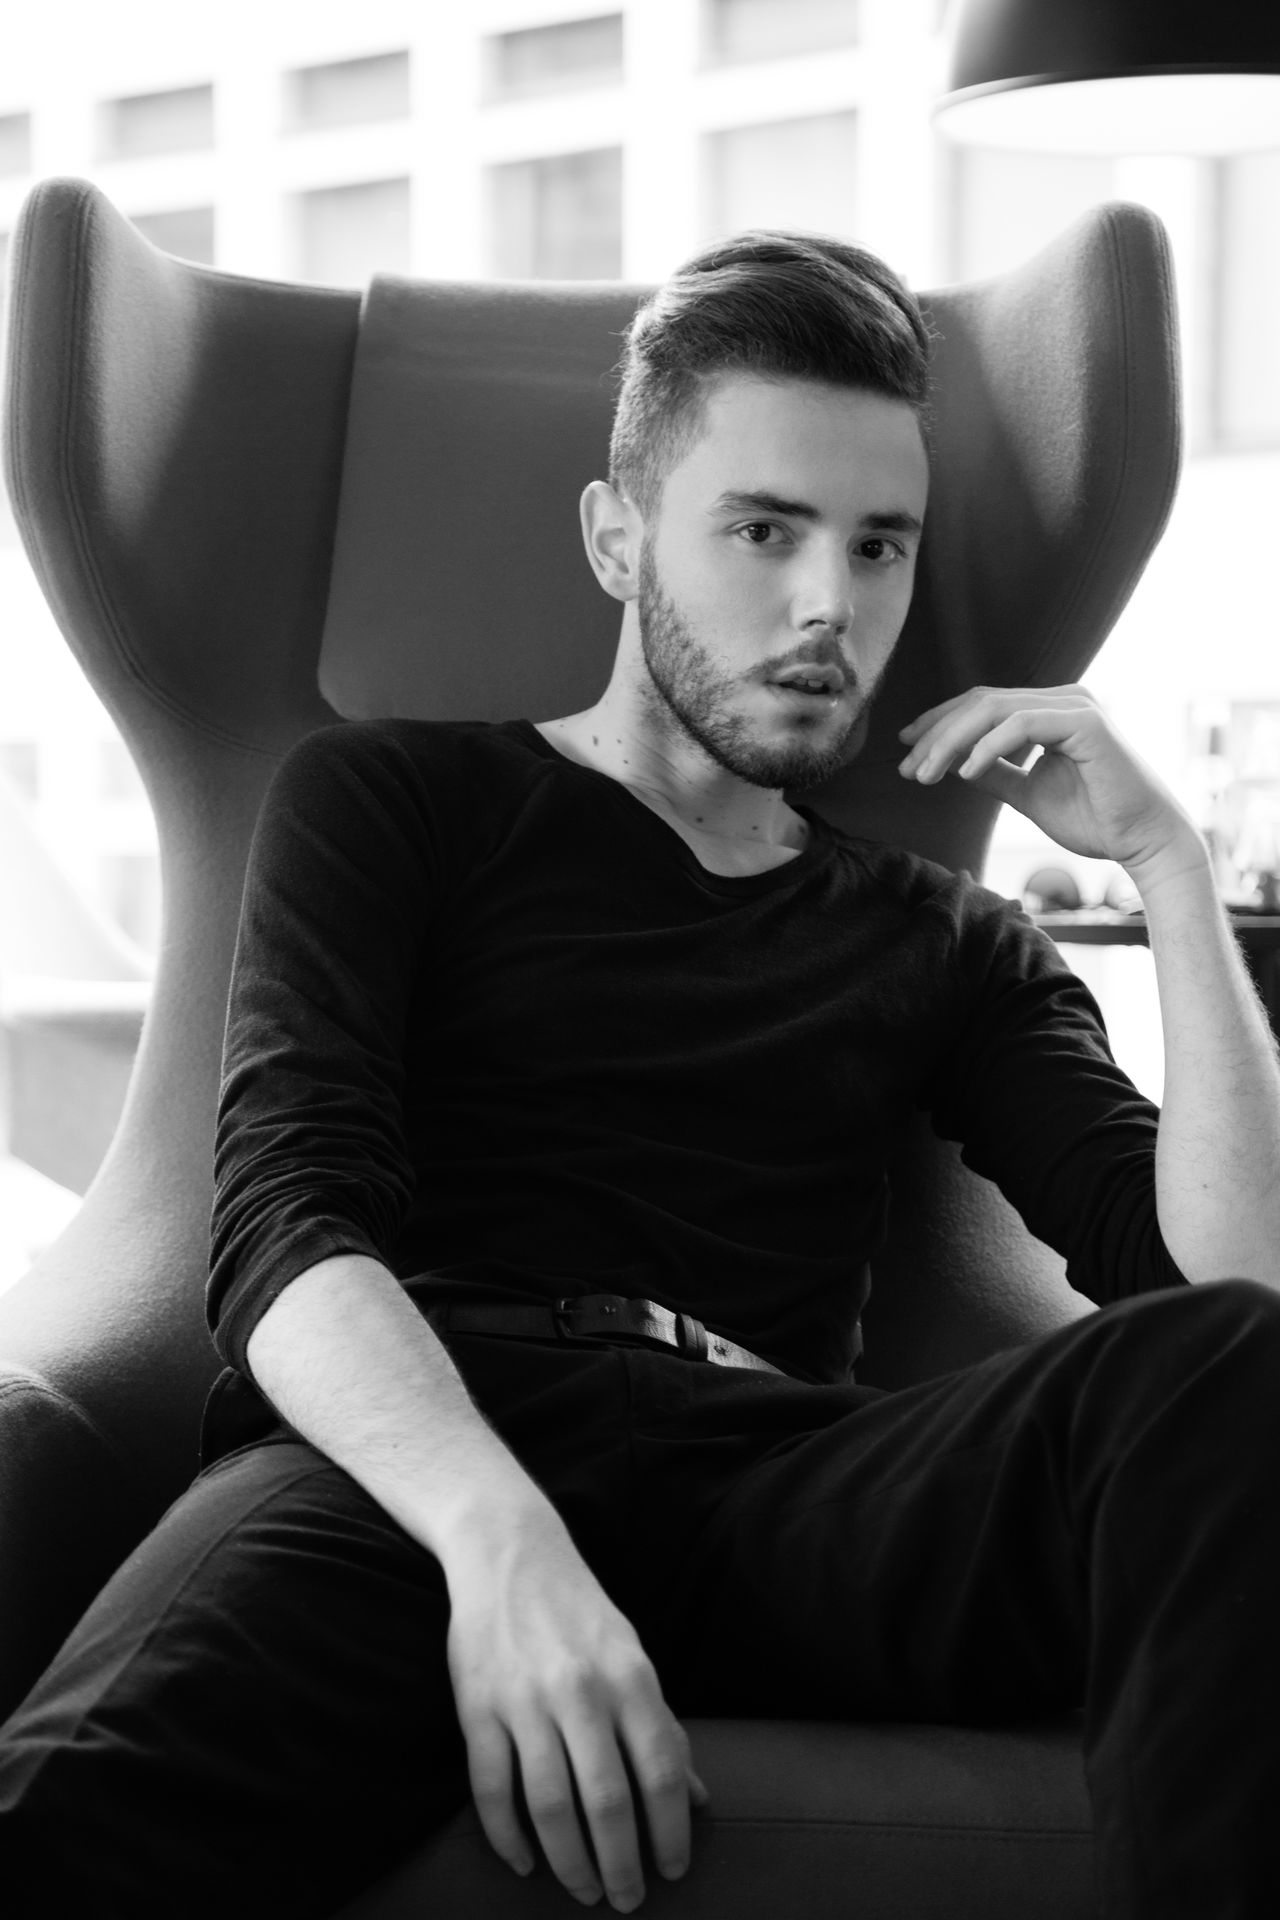 Casual Clothing Chair Chill Day Home Interior Indoors  Looking At Camera One Person Portrait Real People Relaxation Seat Sitting Sofa Young Men